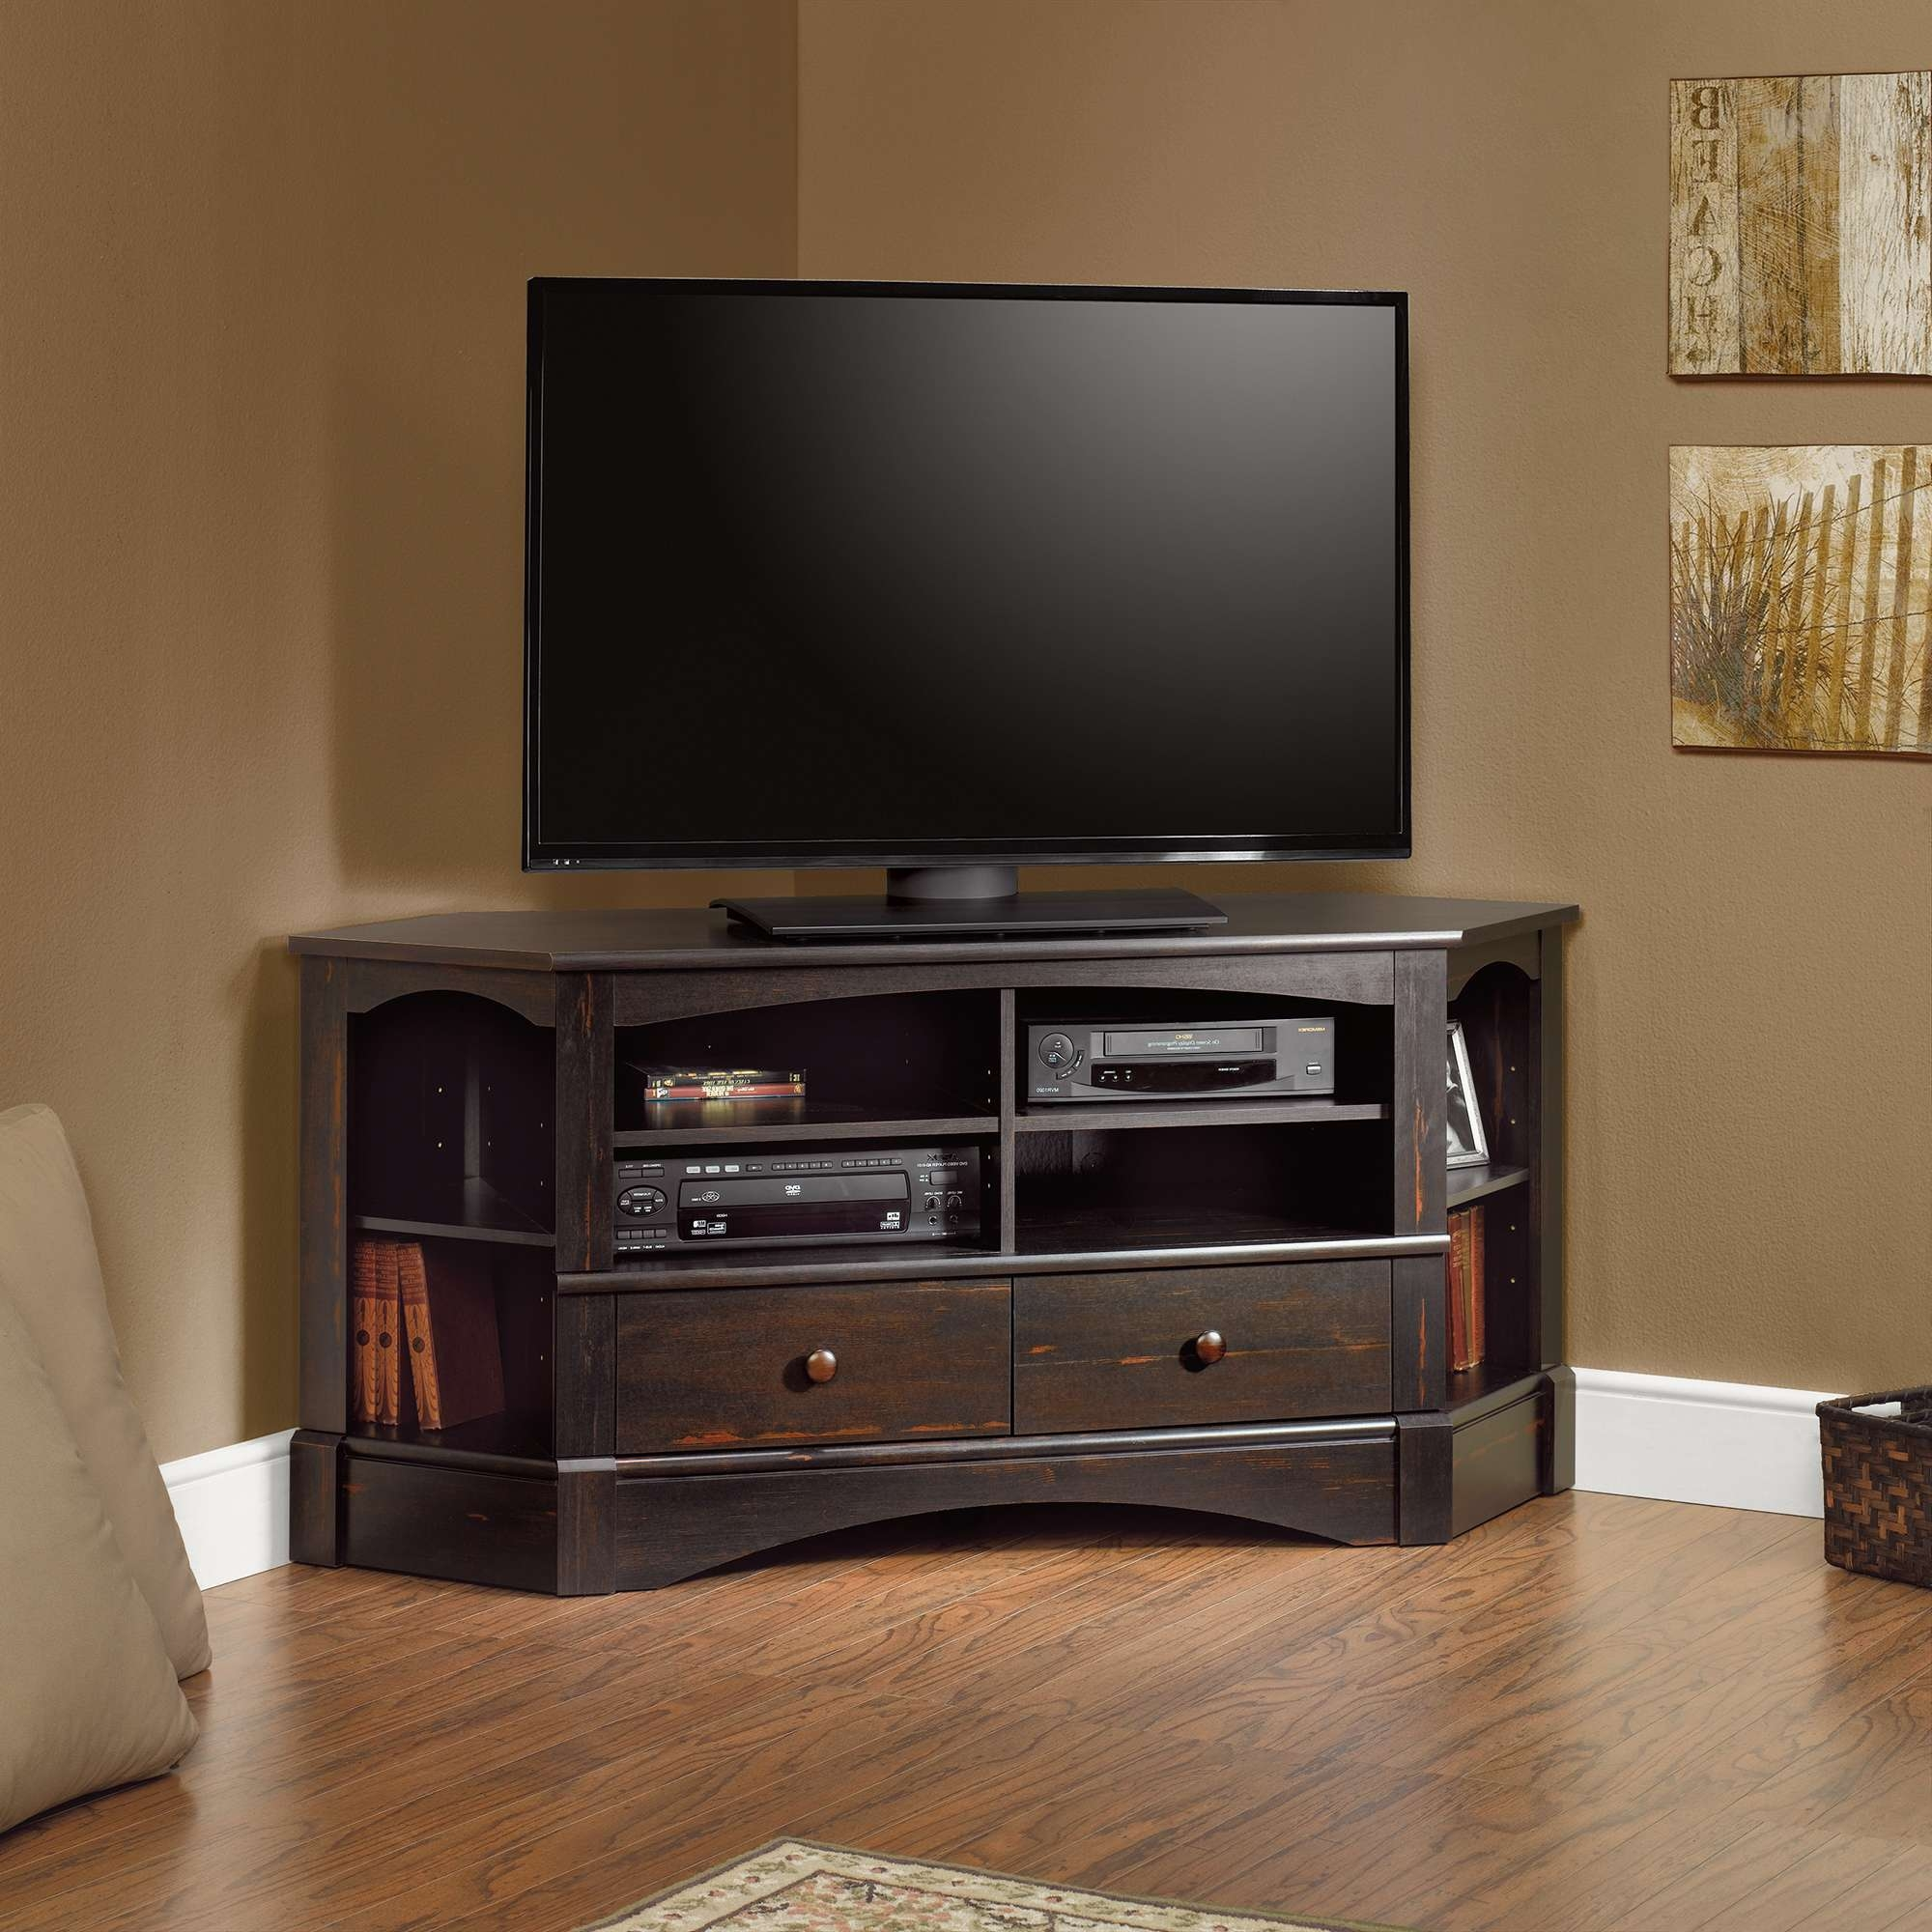 Best 20 Of Oak Tv Cabinets For Flat Screens